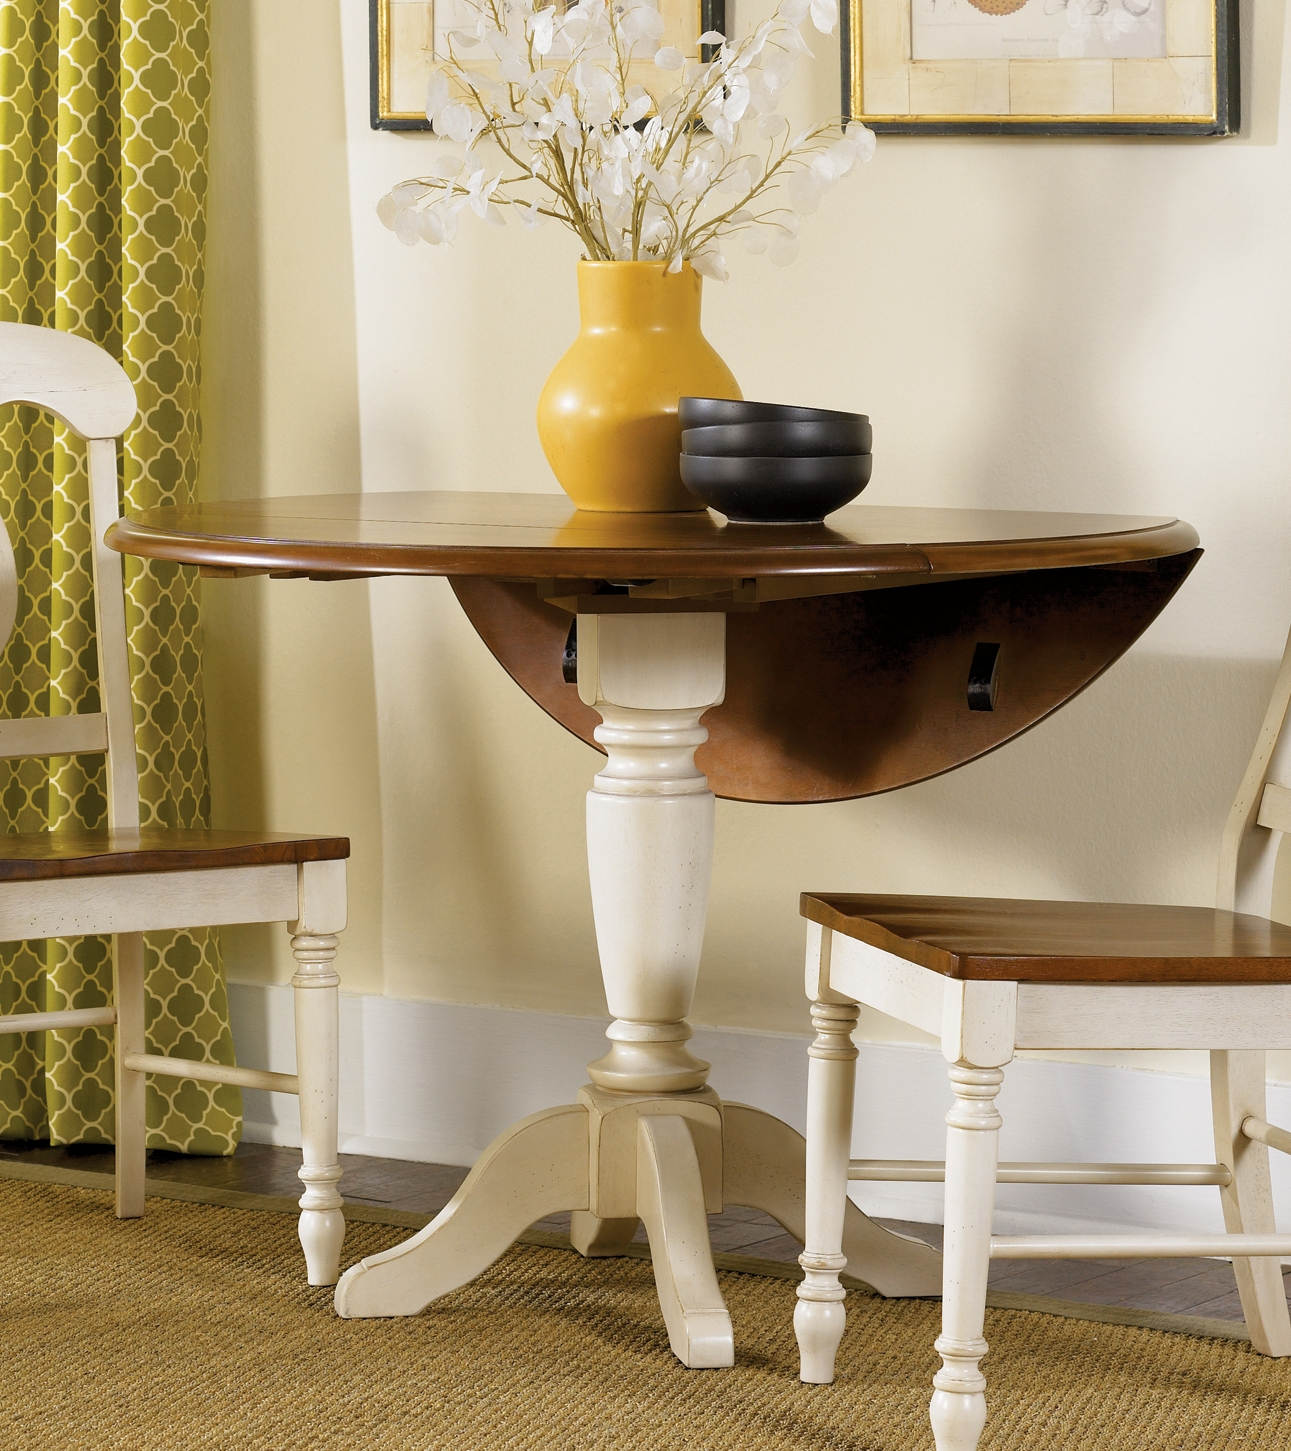 Liberty Furniture Low Country Sand Dining Bench At Hayneedle: Liberty Low Country Sand Pedestal Dining Table